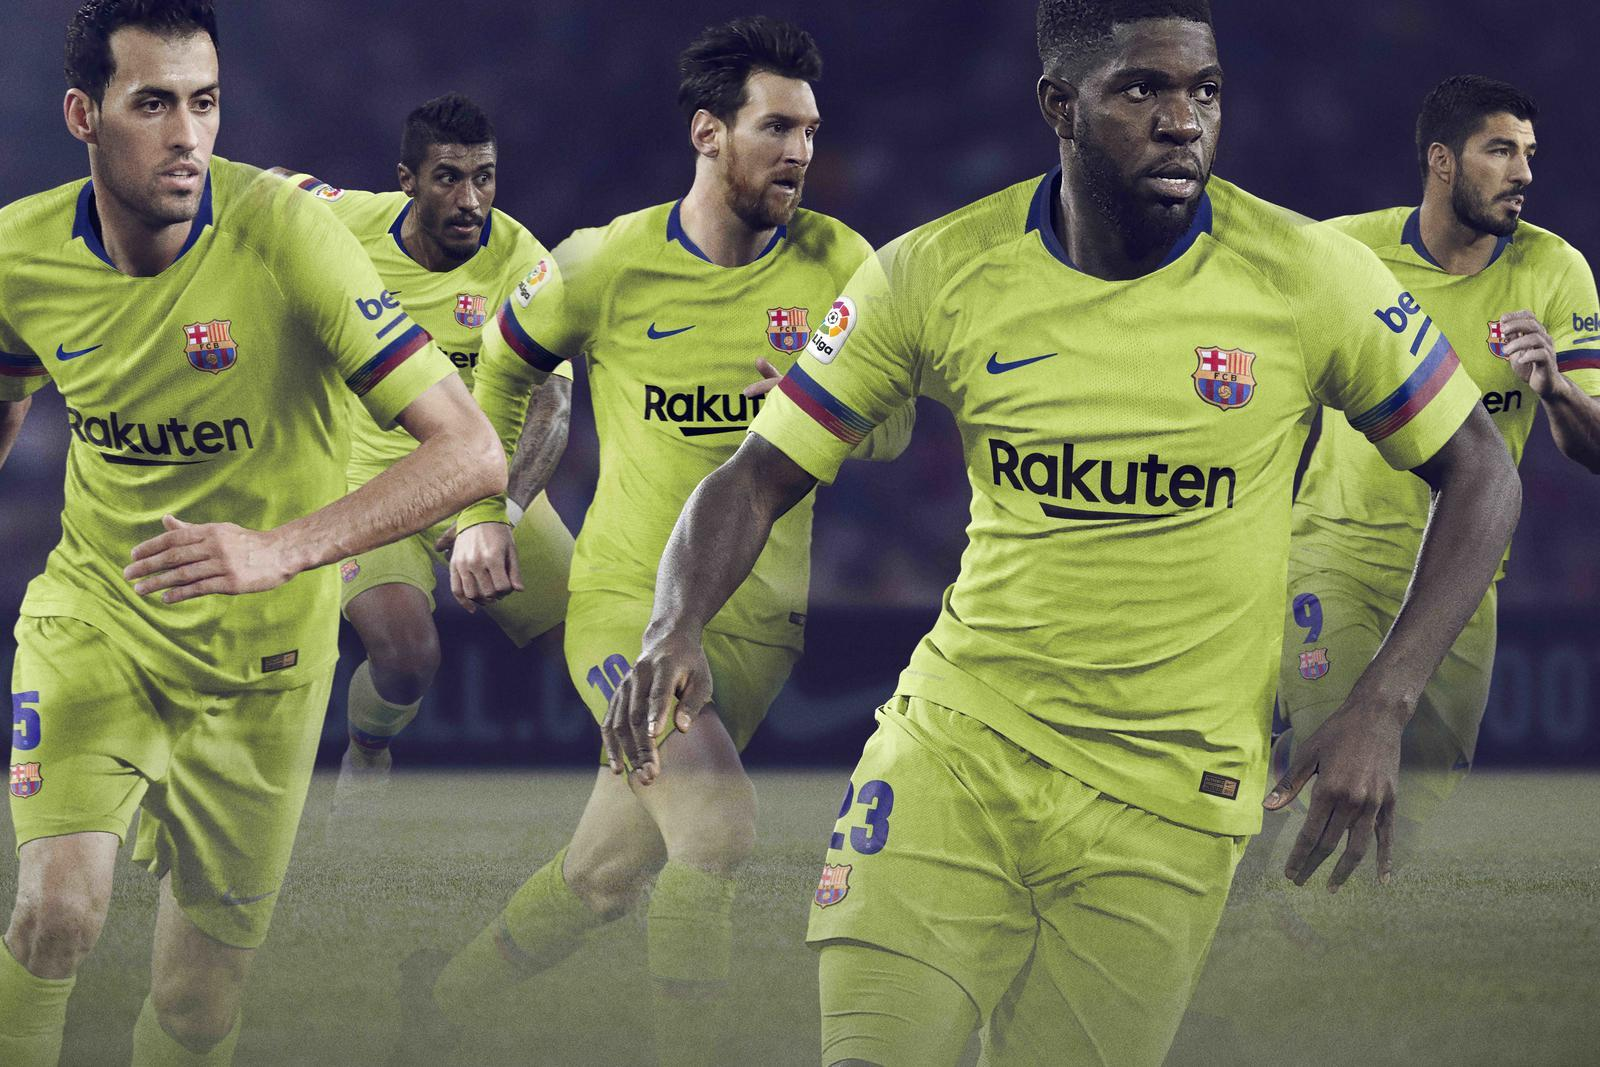 FC Barcelona Away Kit 2018-19 - Nike News